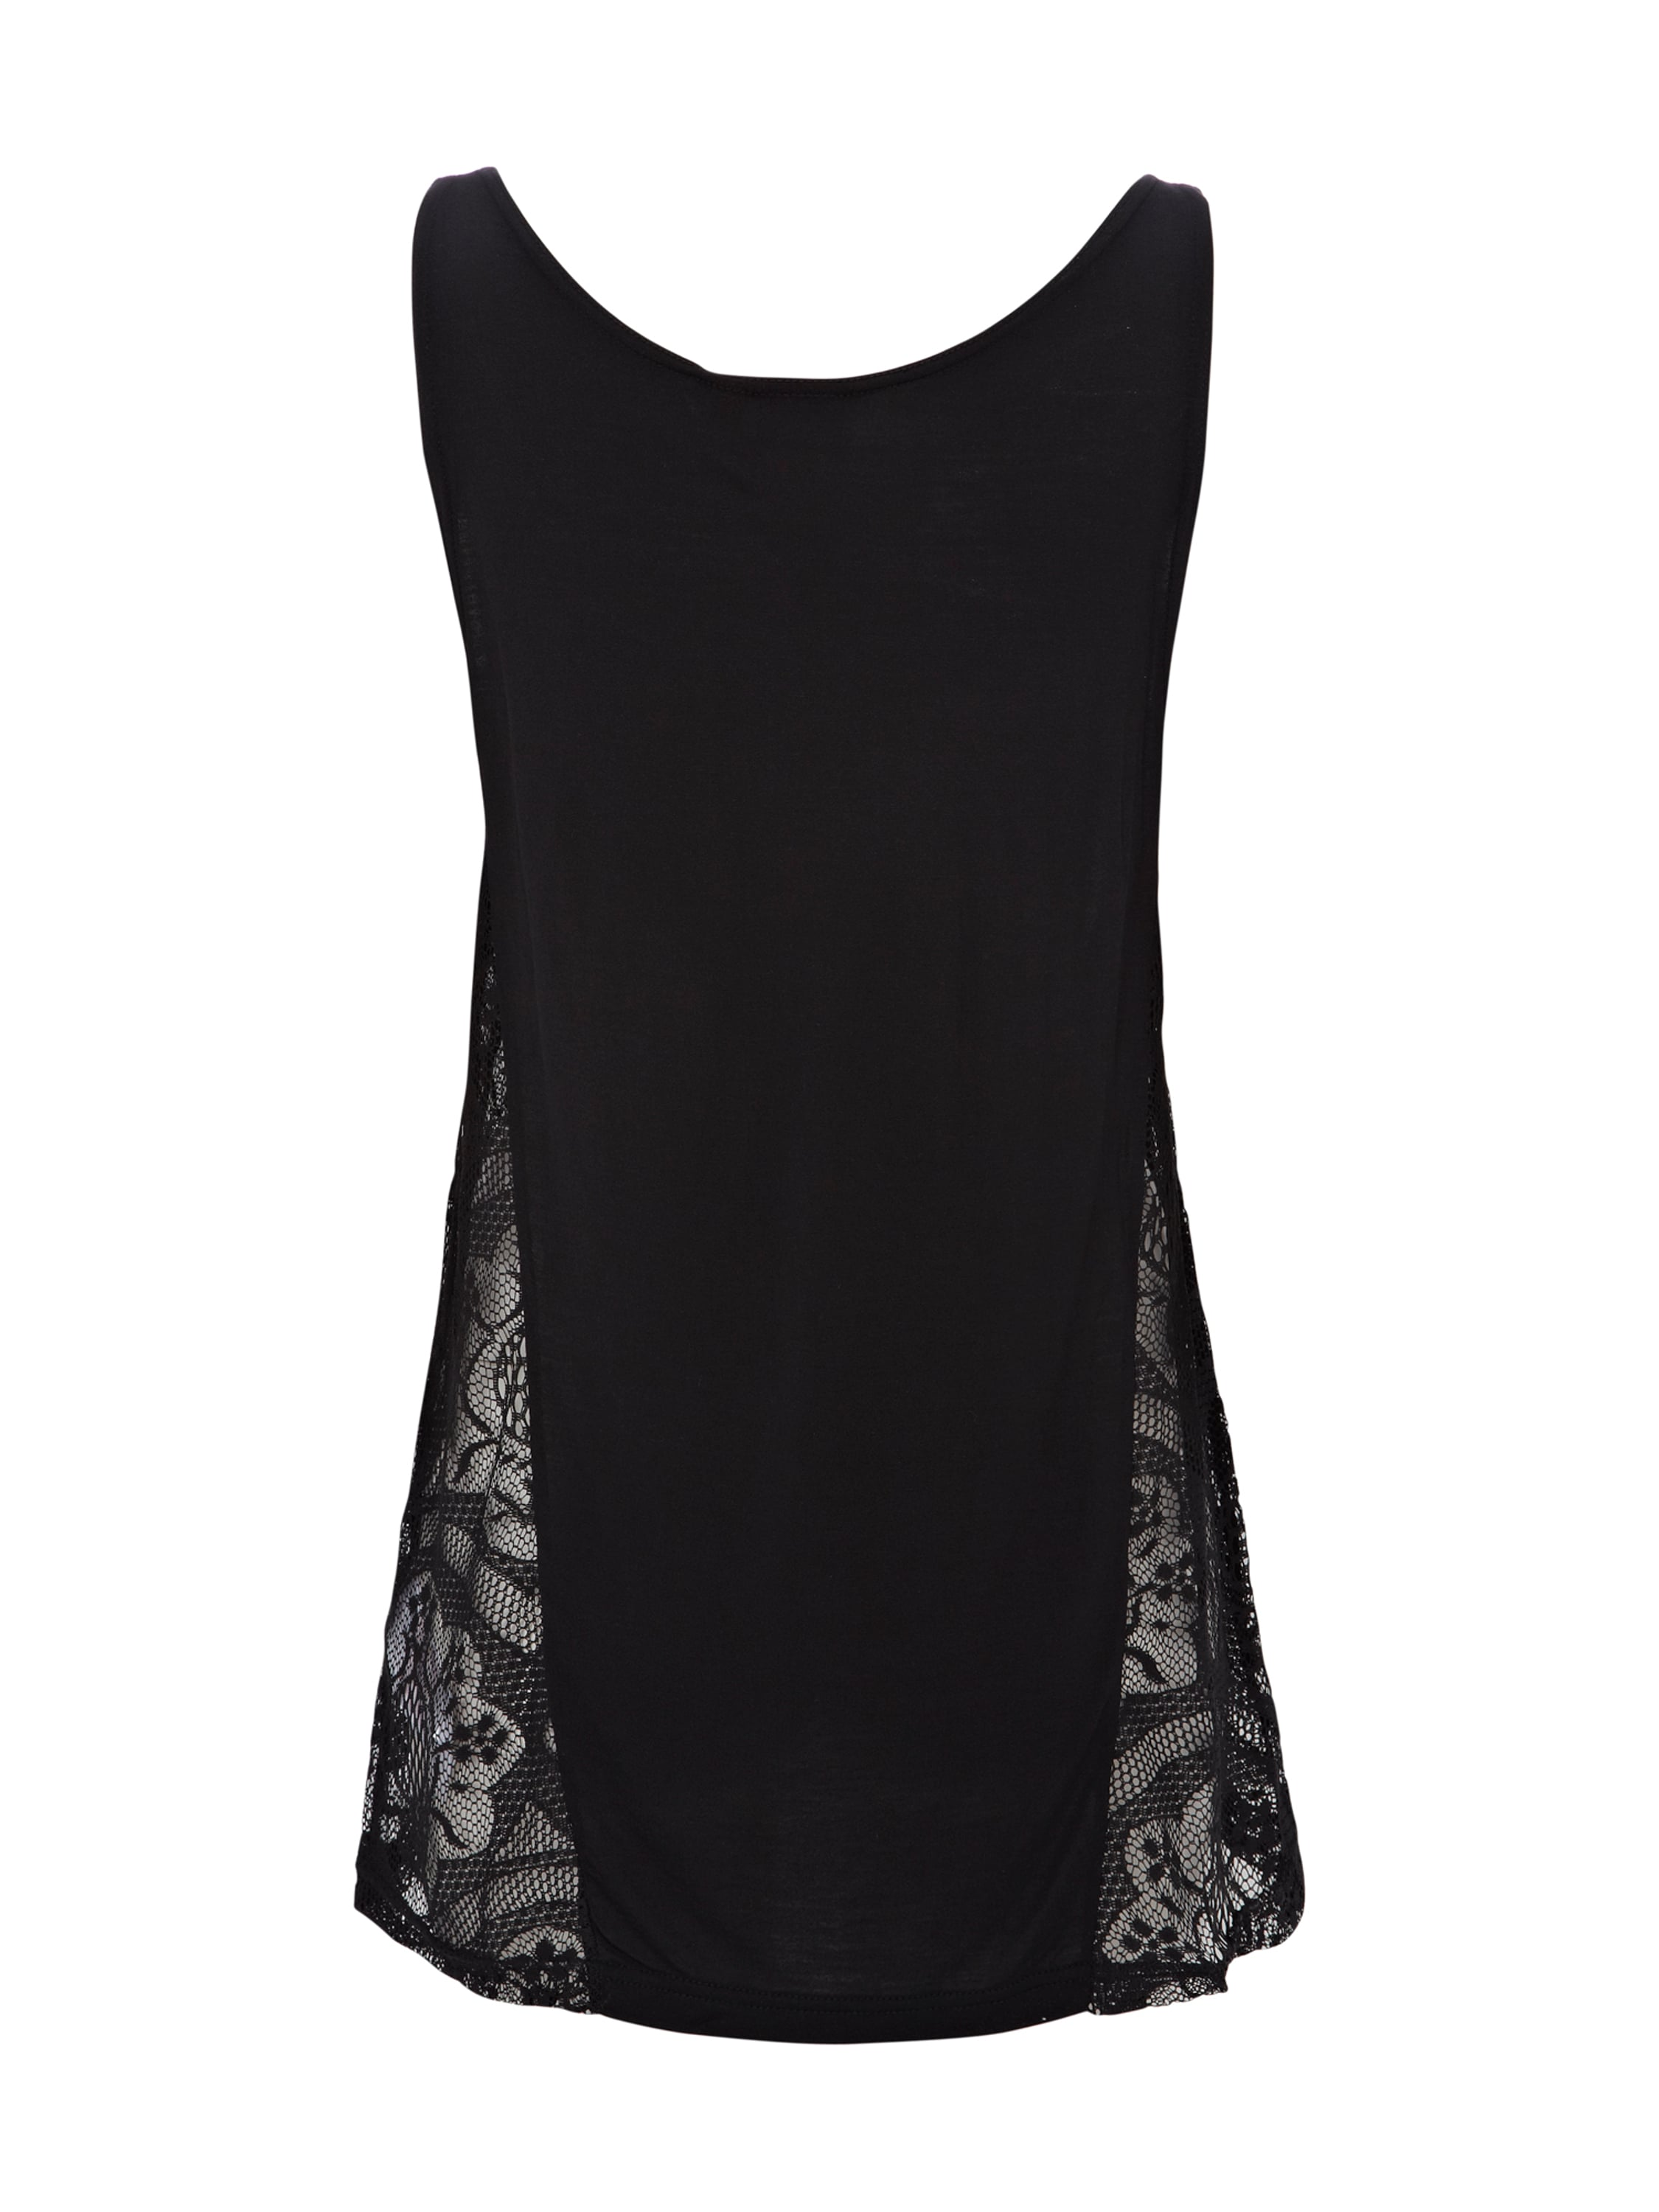 vokuhila tanktop mit spitze fashion id online shop. Black Bedroom Furniture Sets. Home Design Ideas